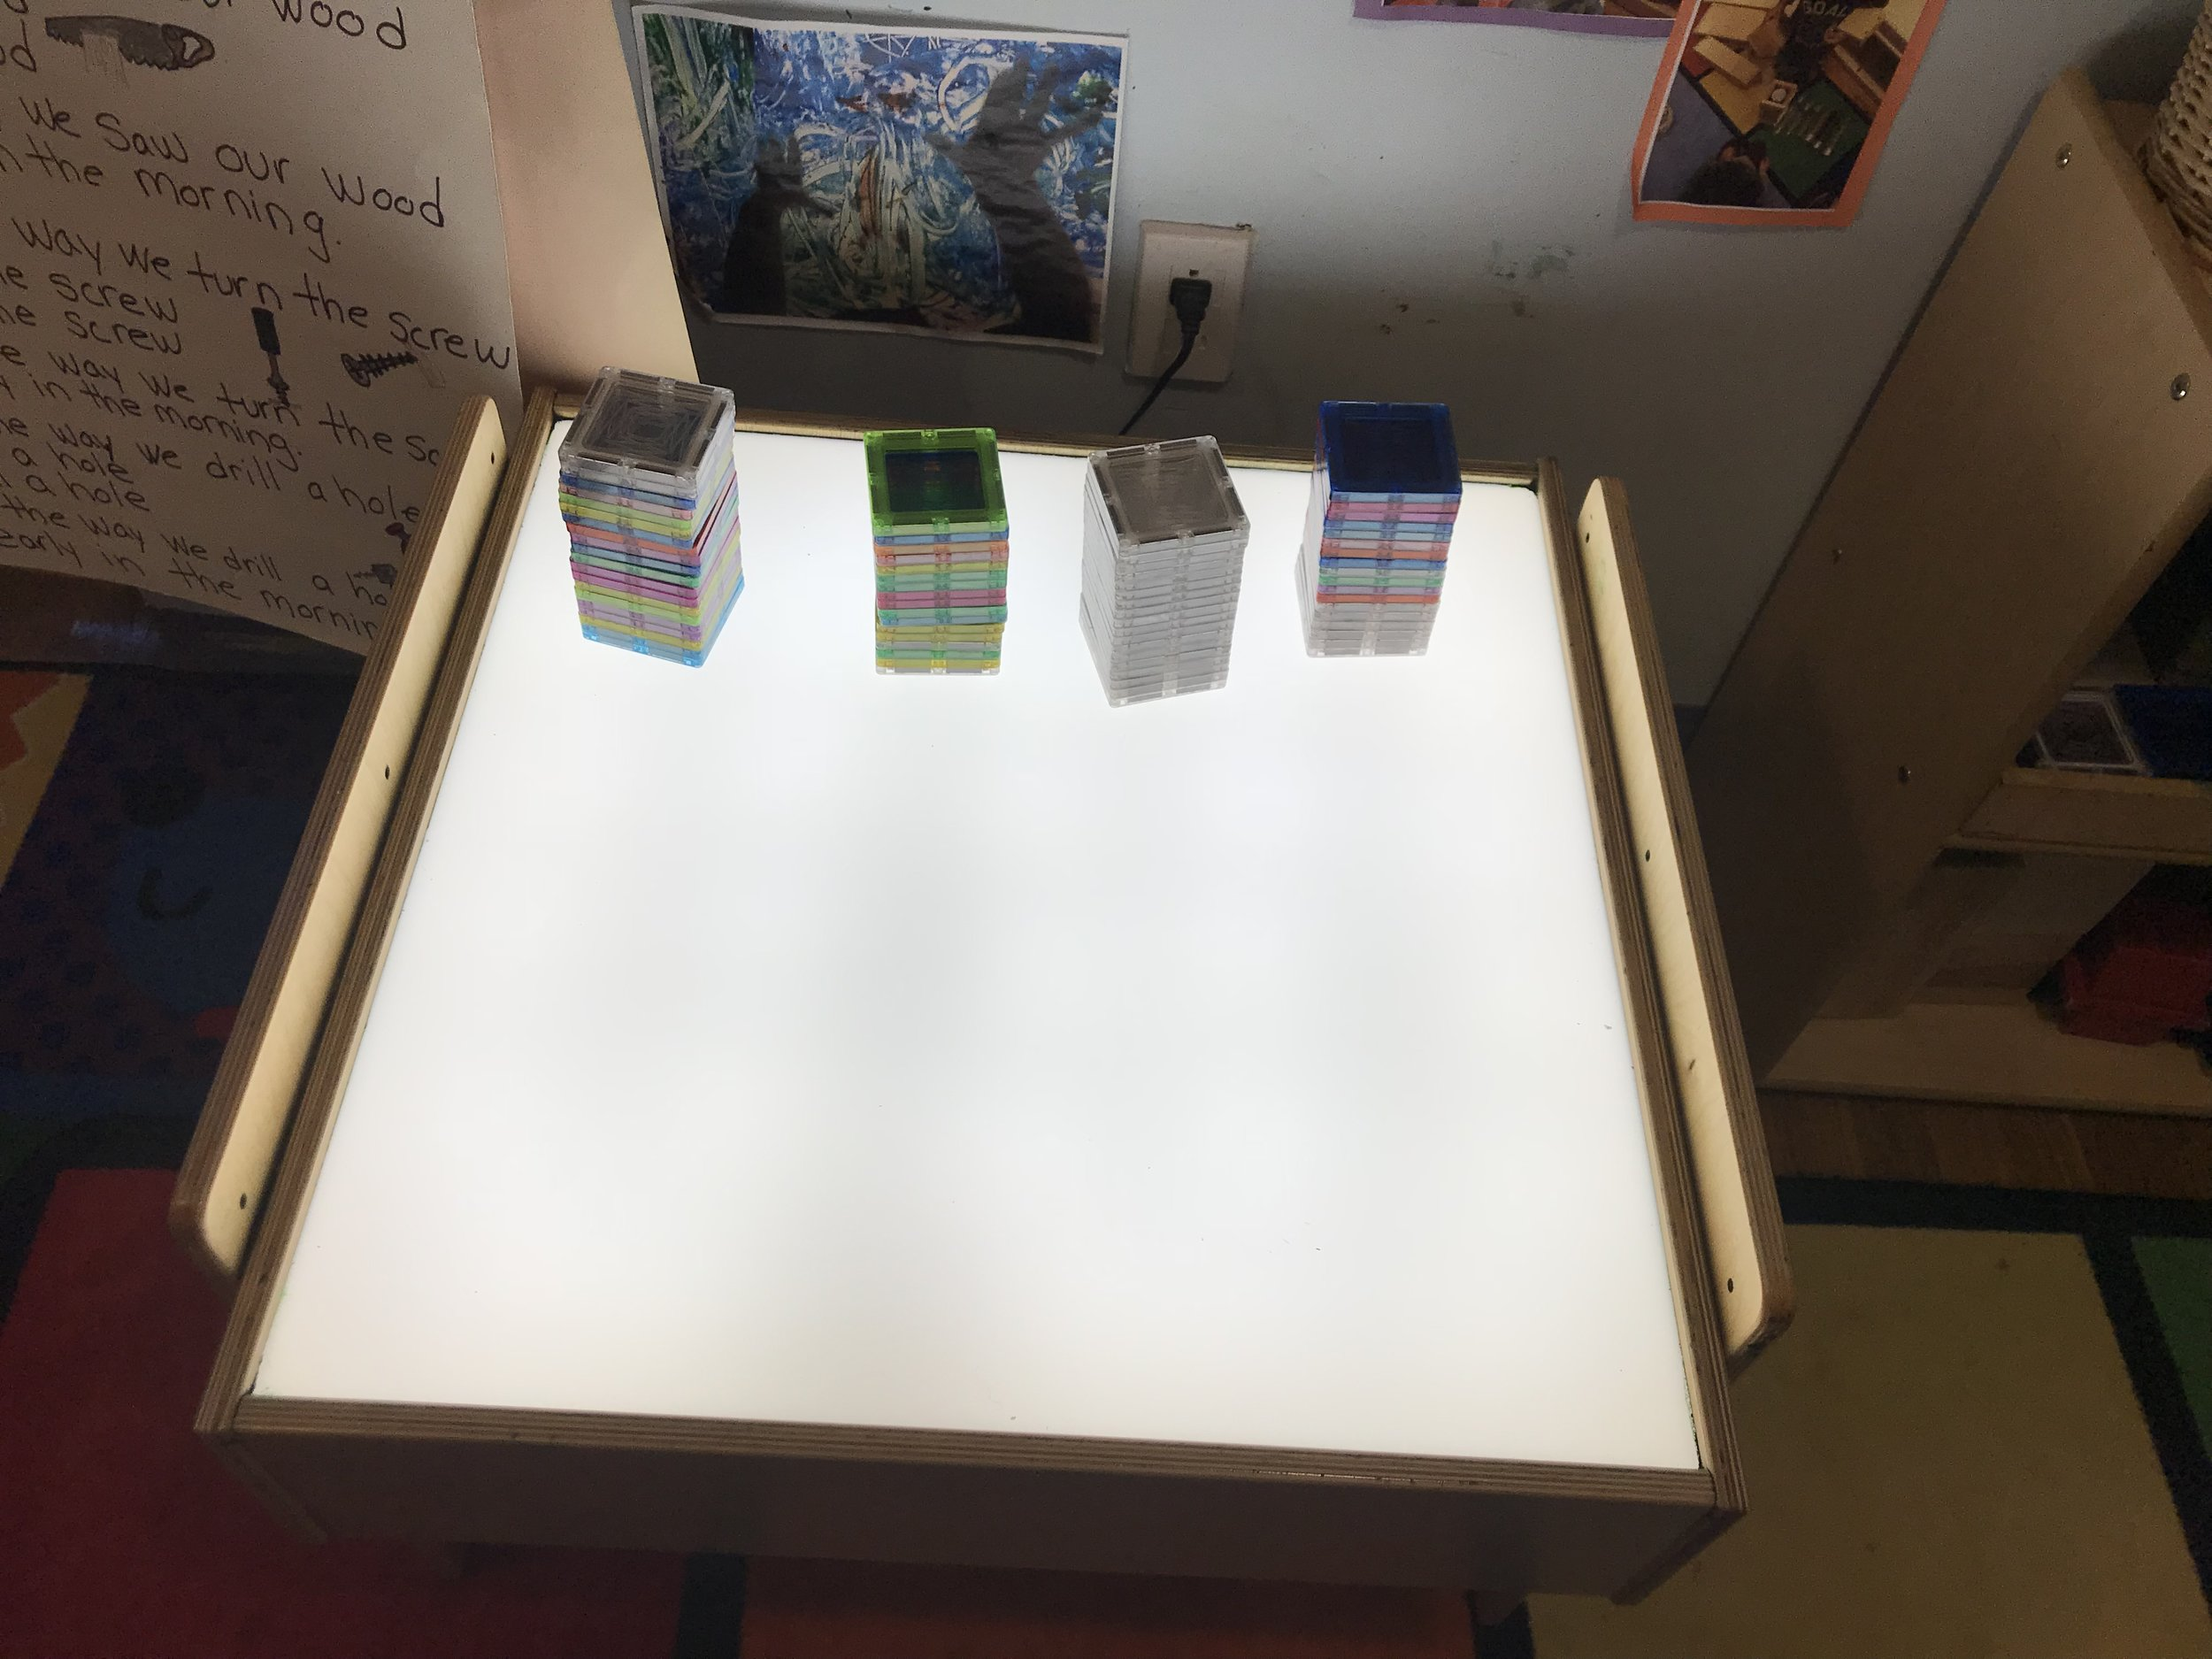 - Invitation to build at the light table with magnet tiles